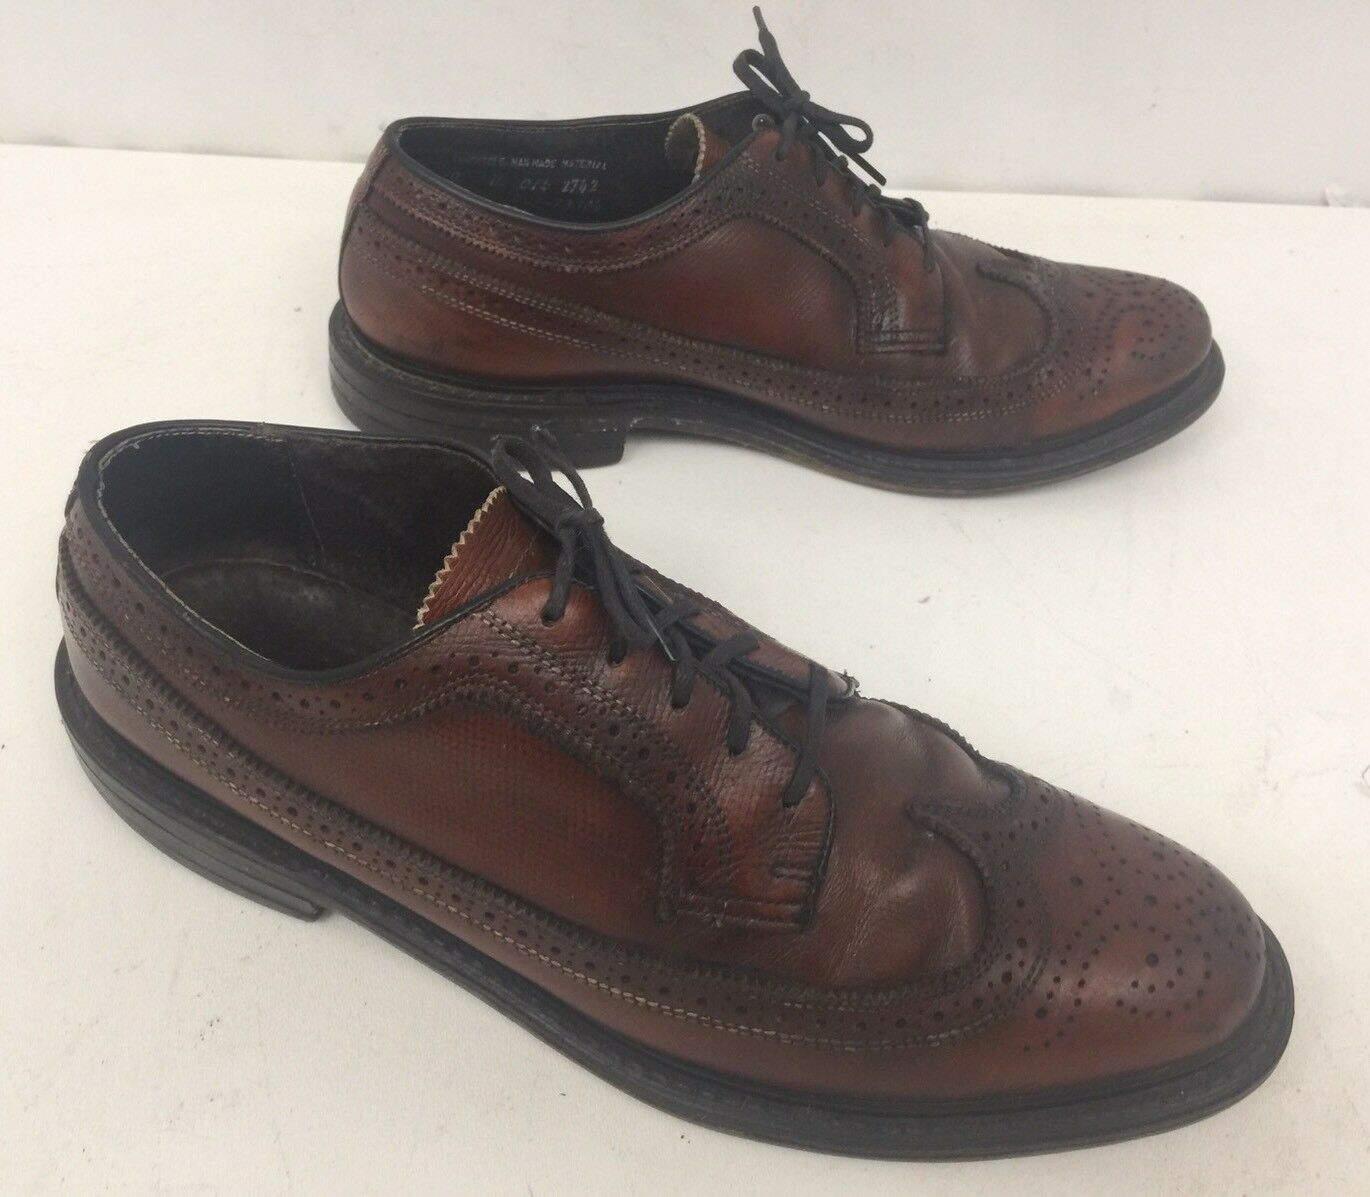 Vintage Florsheim Imperial Brown Pebble Leather Long Wing Tip shoes Size 10 D